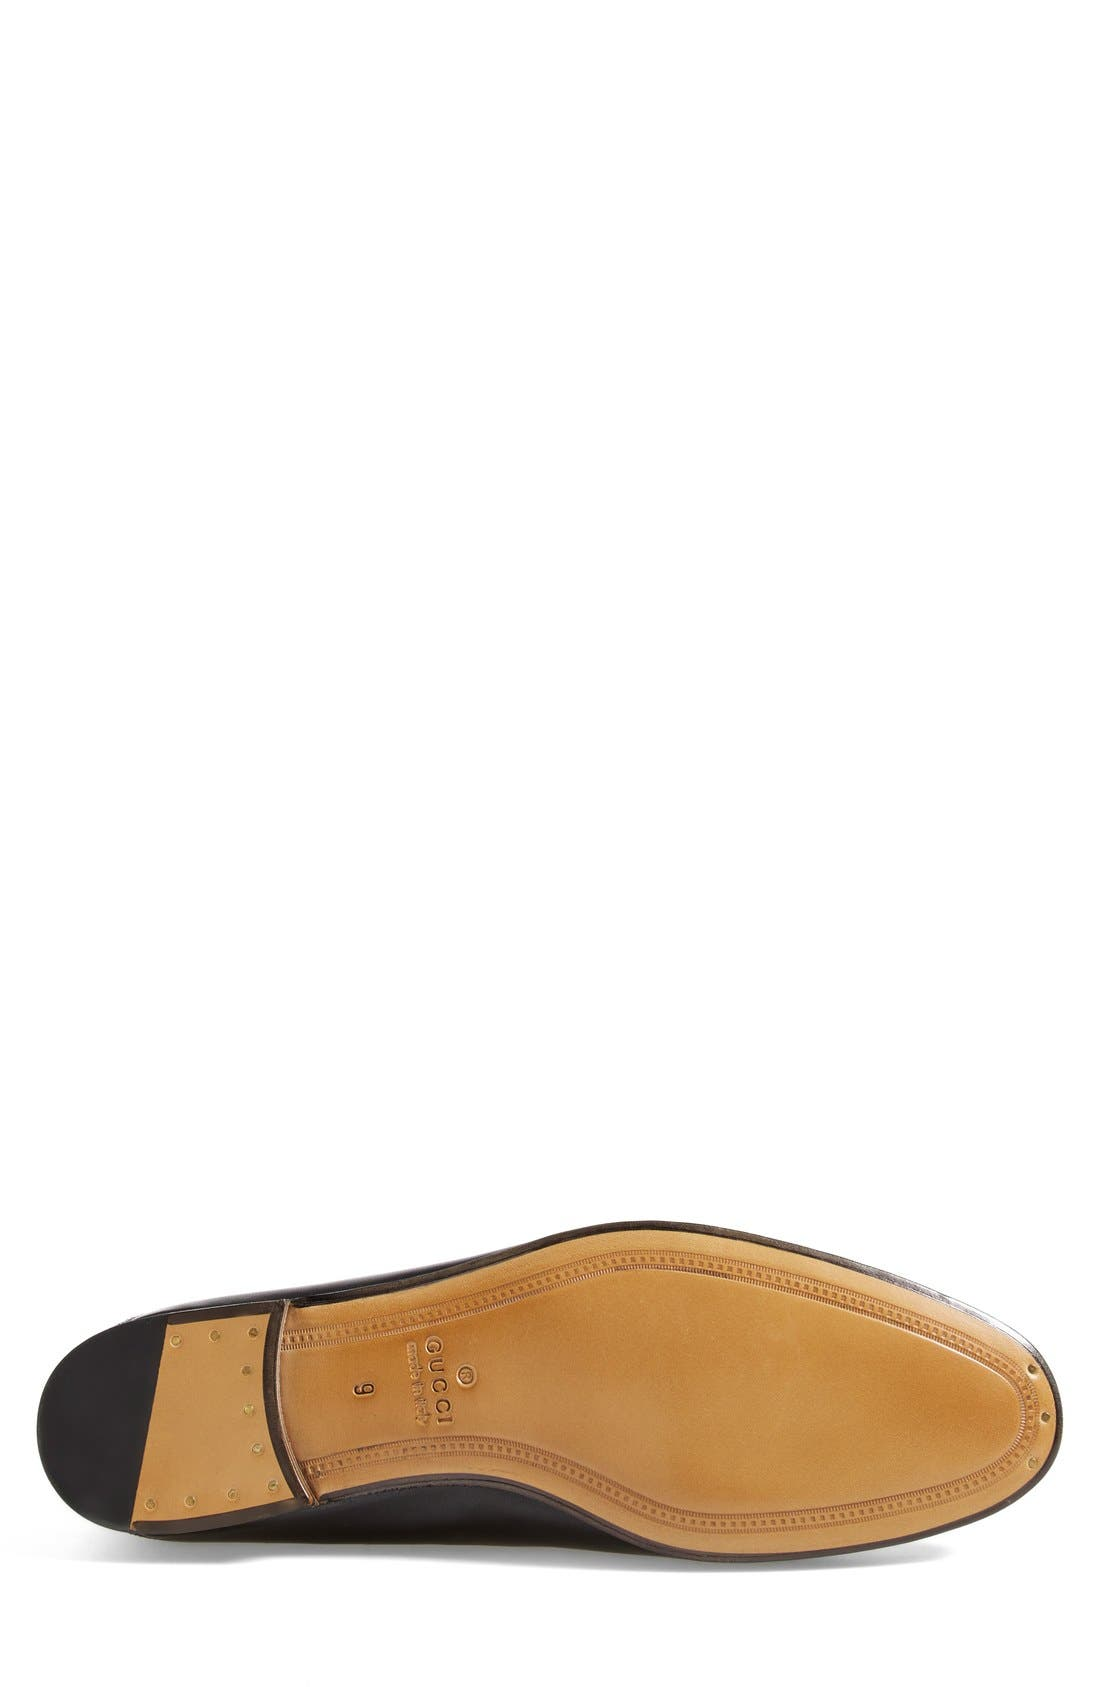 Brixton Leather Loafer,                             Alternate thumbnail 5, color,                             NERO LEATHER